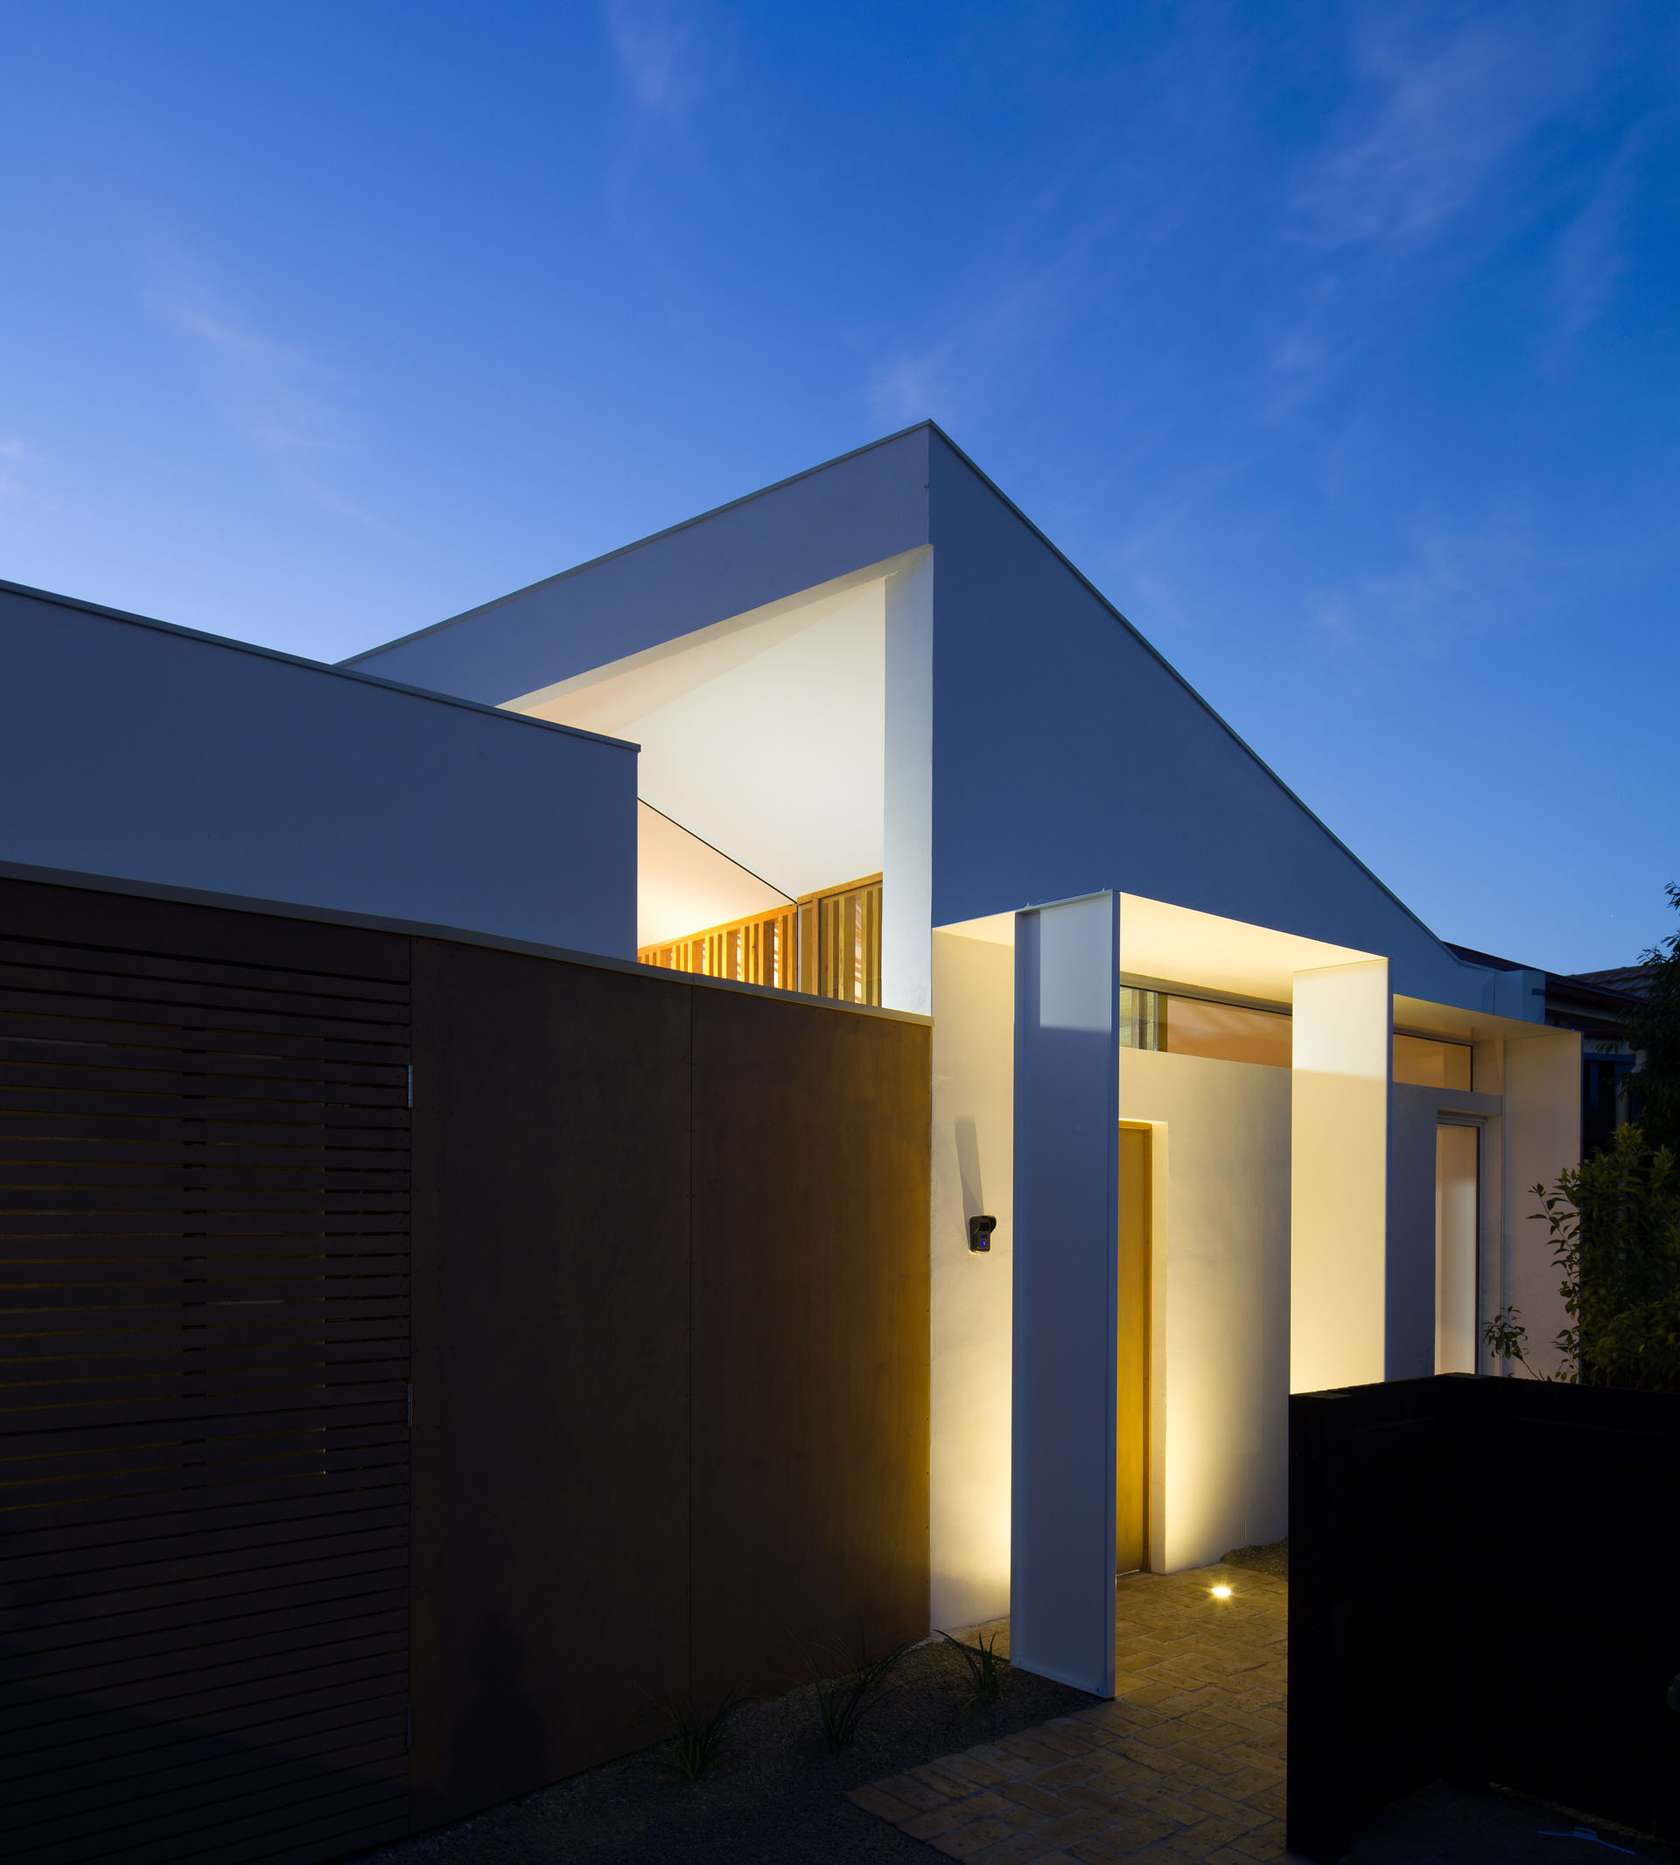 C House Prioritises Volume And Light Play Over Excessive Floor Space